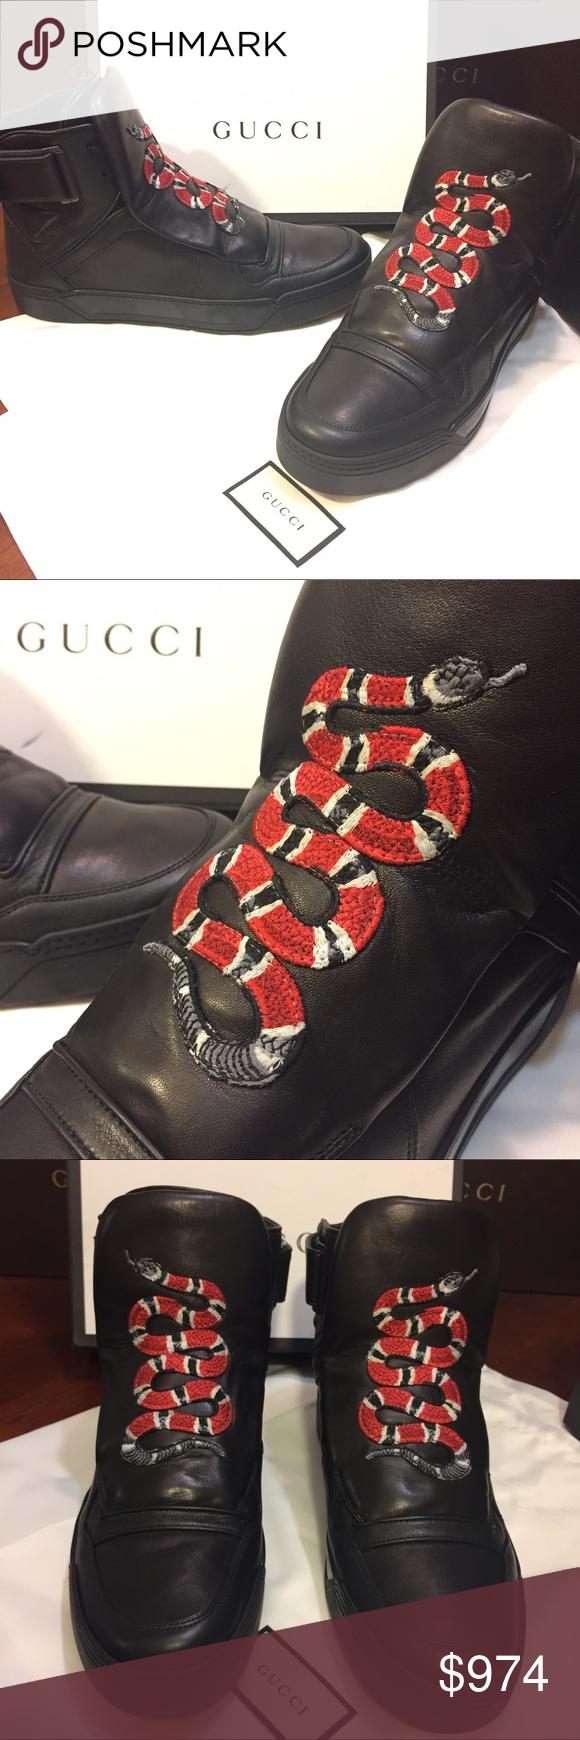 540f97ac0 NEW Gucci Coral Snake Appliqué High Top Sneakers. NEW Gucci Black Leather High  Top Sneakers